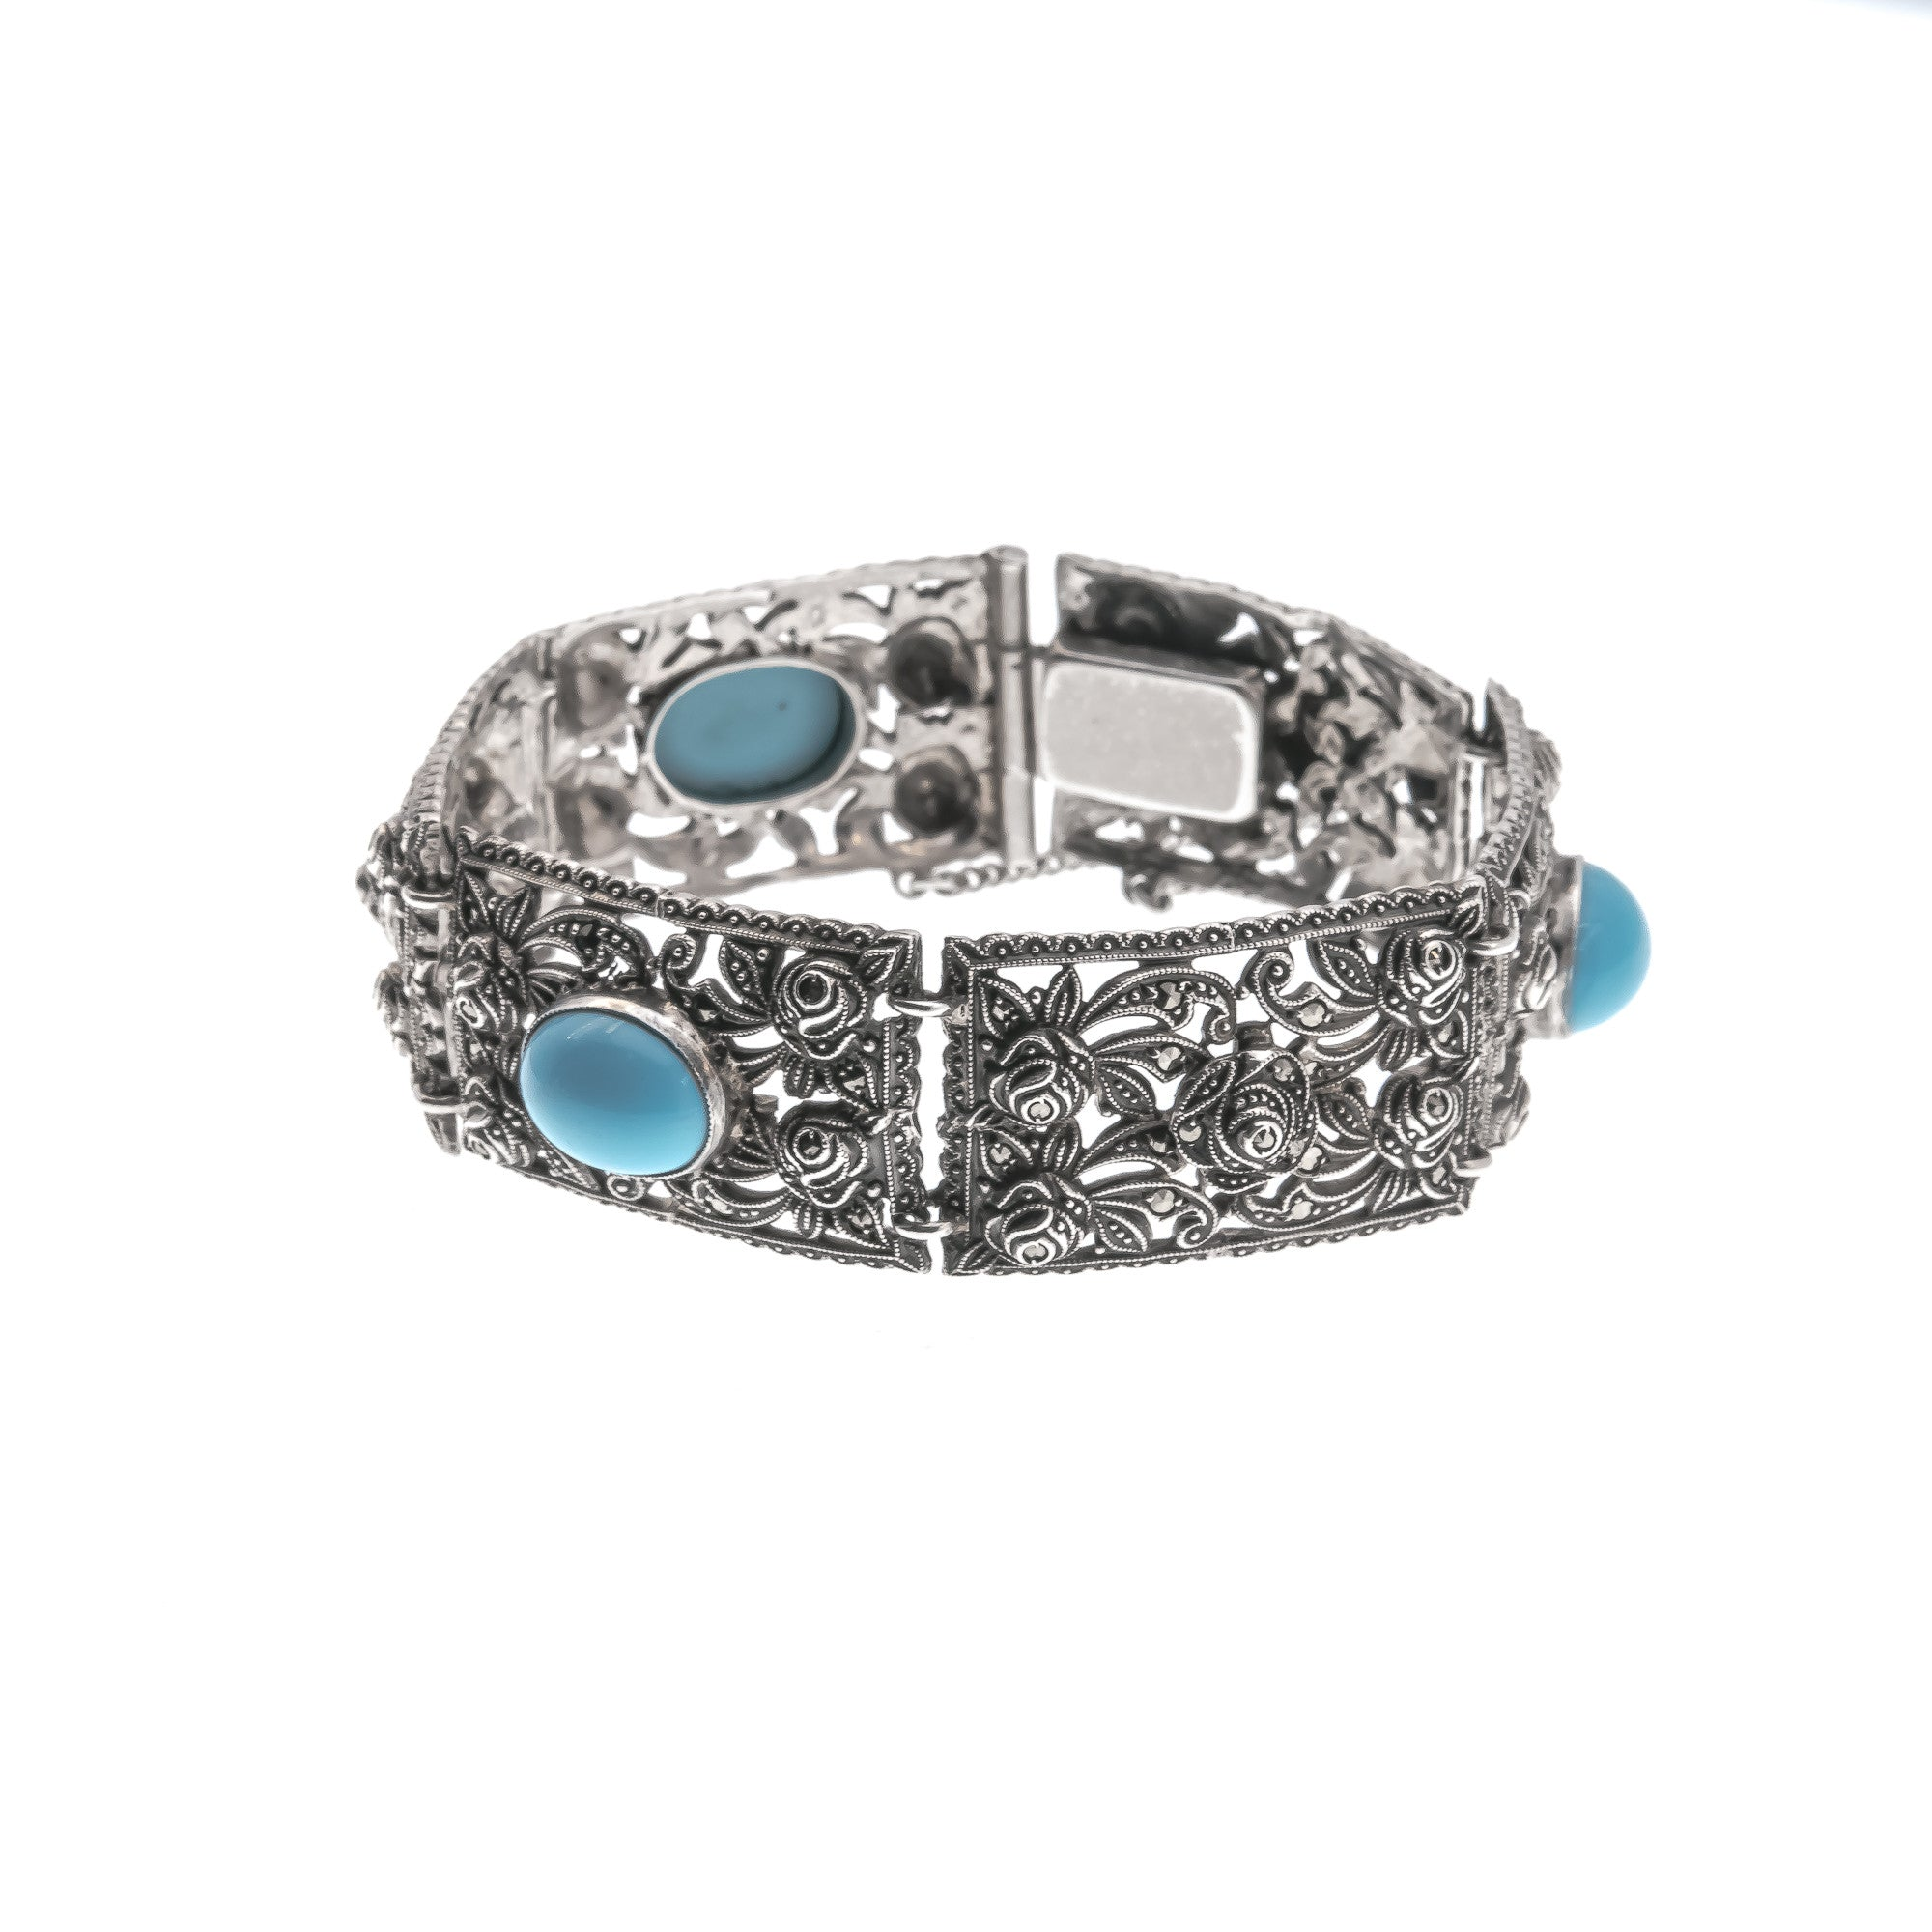 look all marcasite products sterling is ring of rings beautiful lord this part the them details plain amazing silver rule pr inspired your one sure wardrobe to as piece